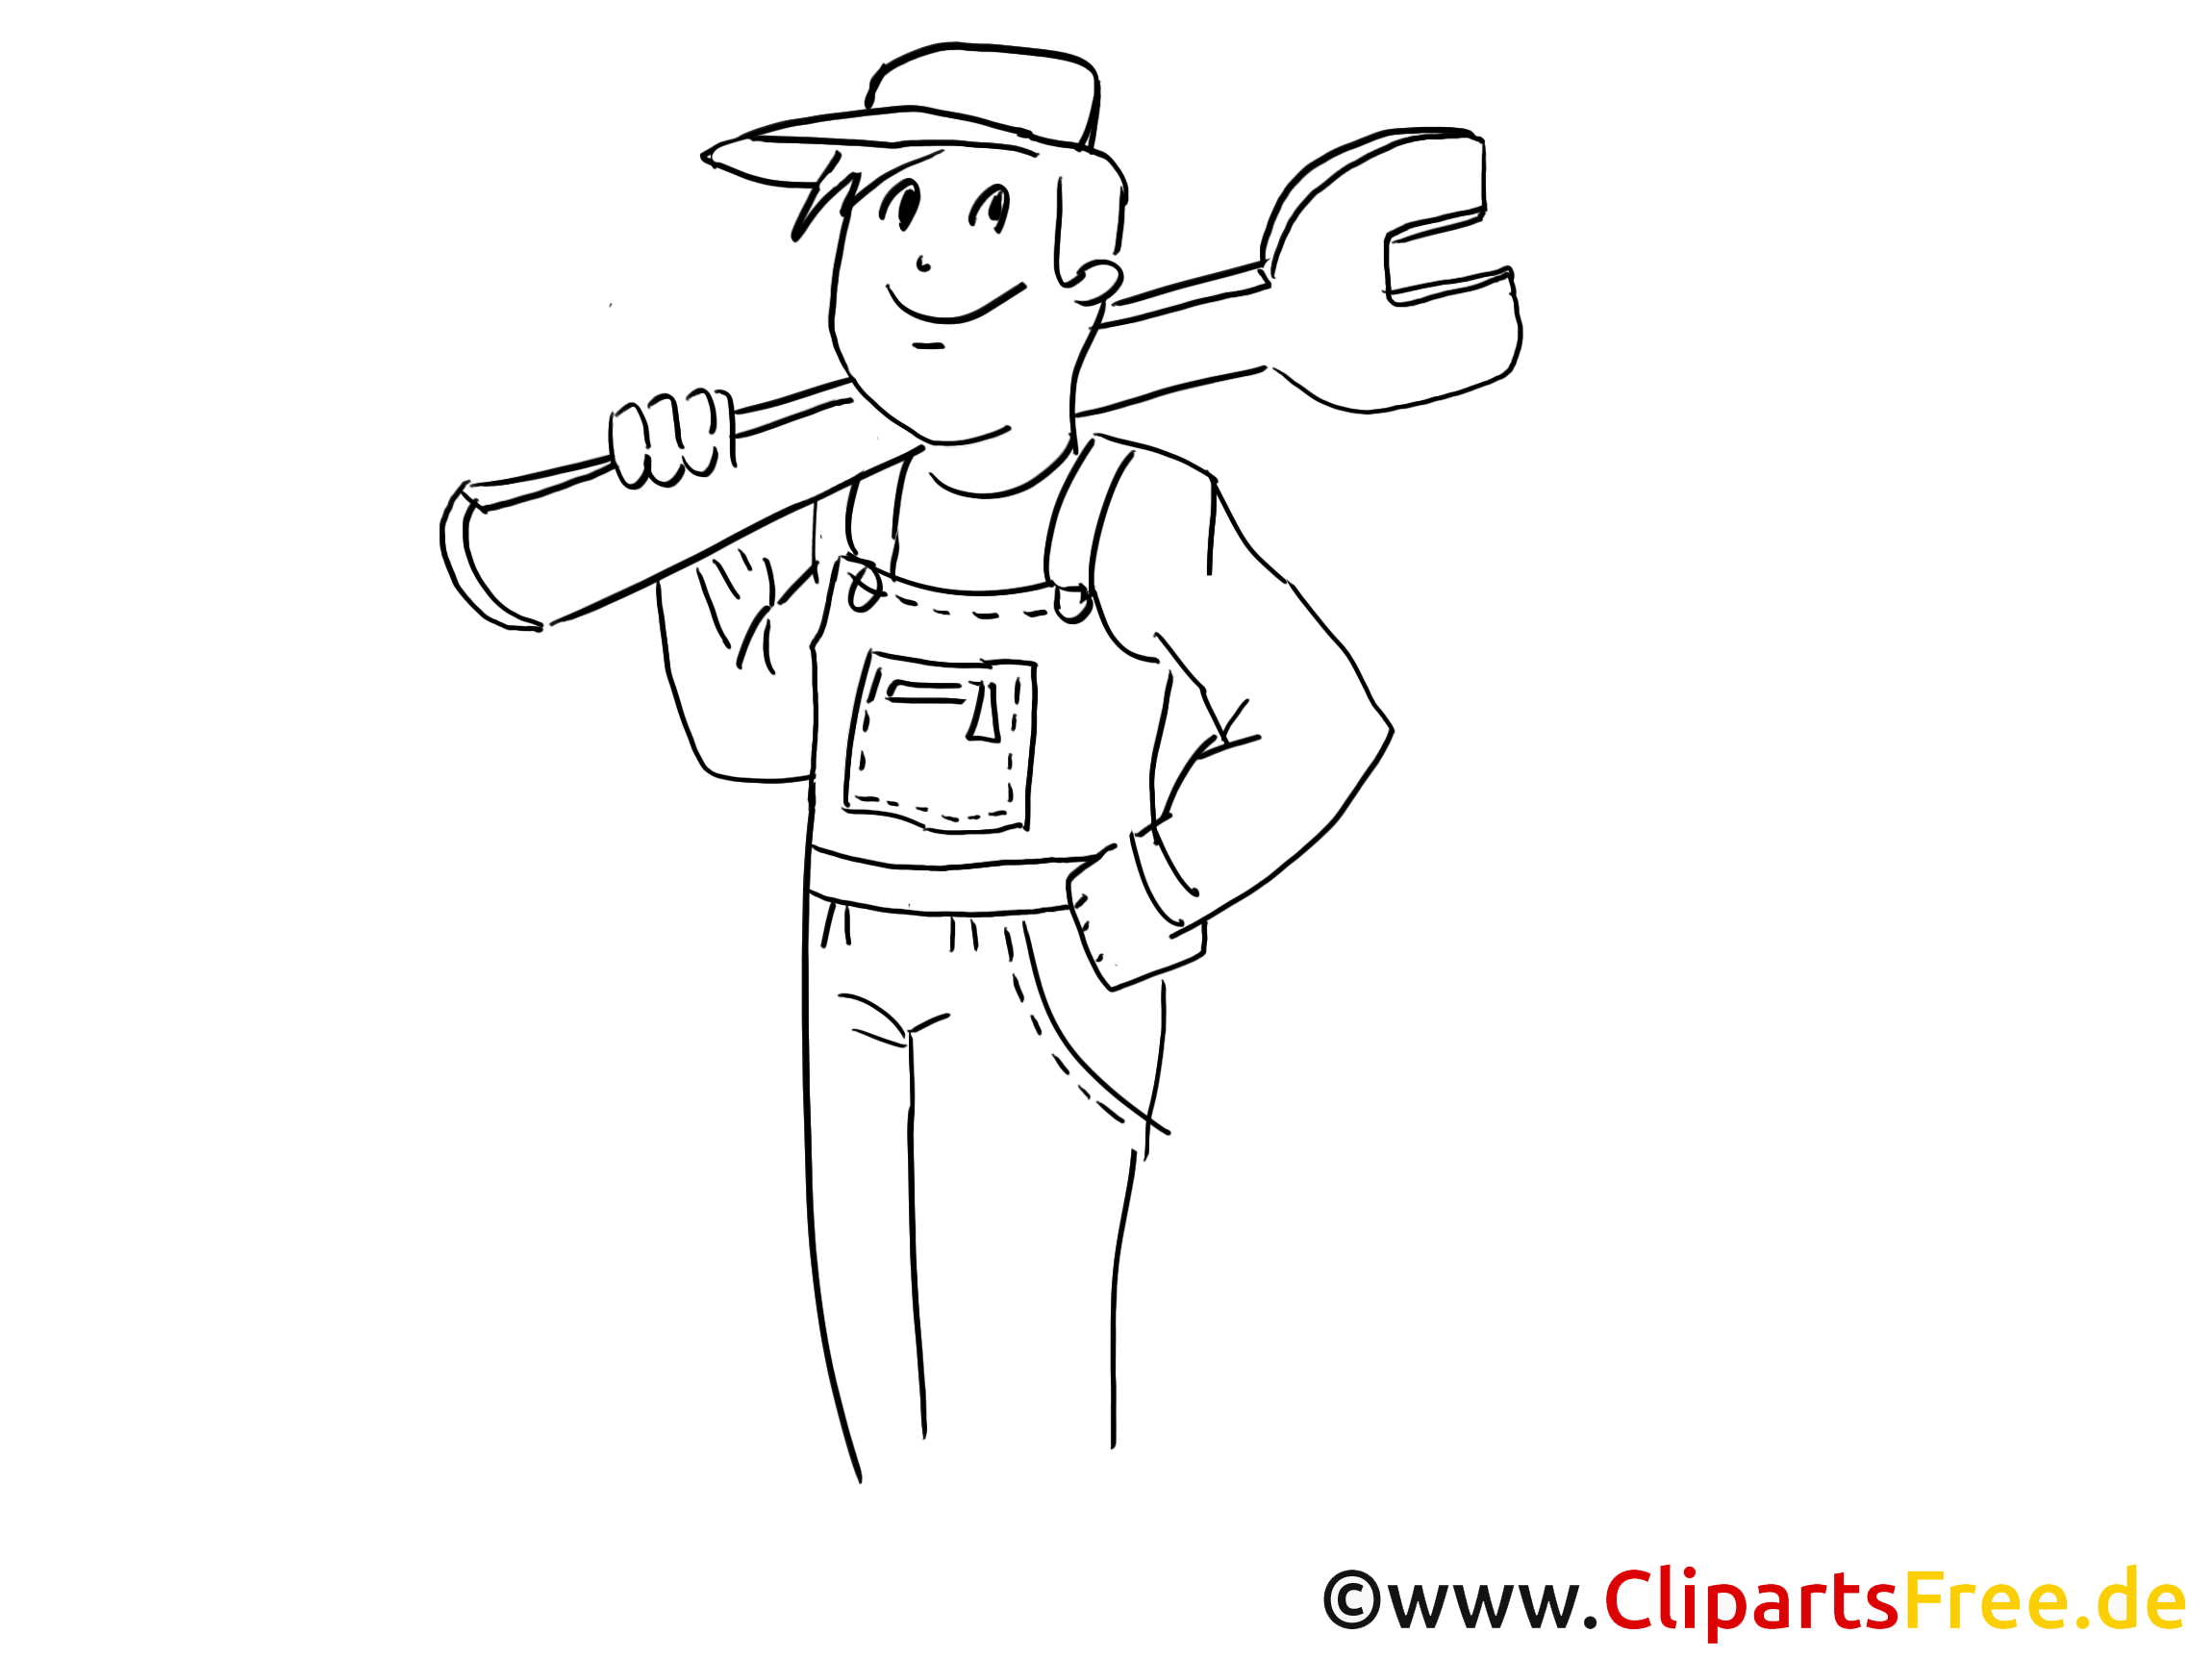 Repairman clip art, graphic, pic, cartoon, comic free